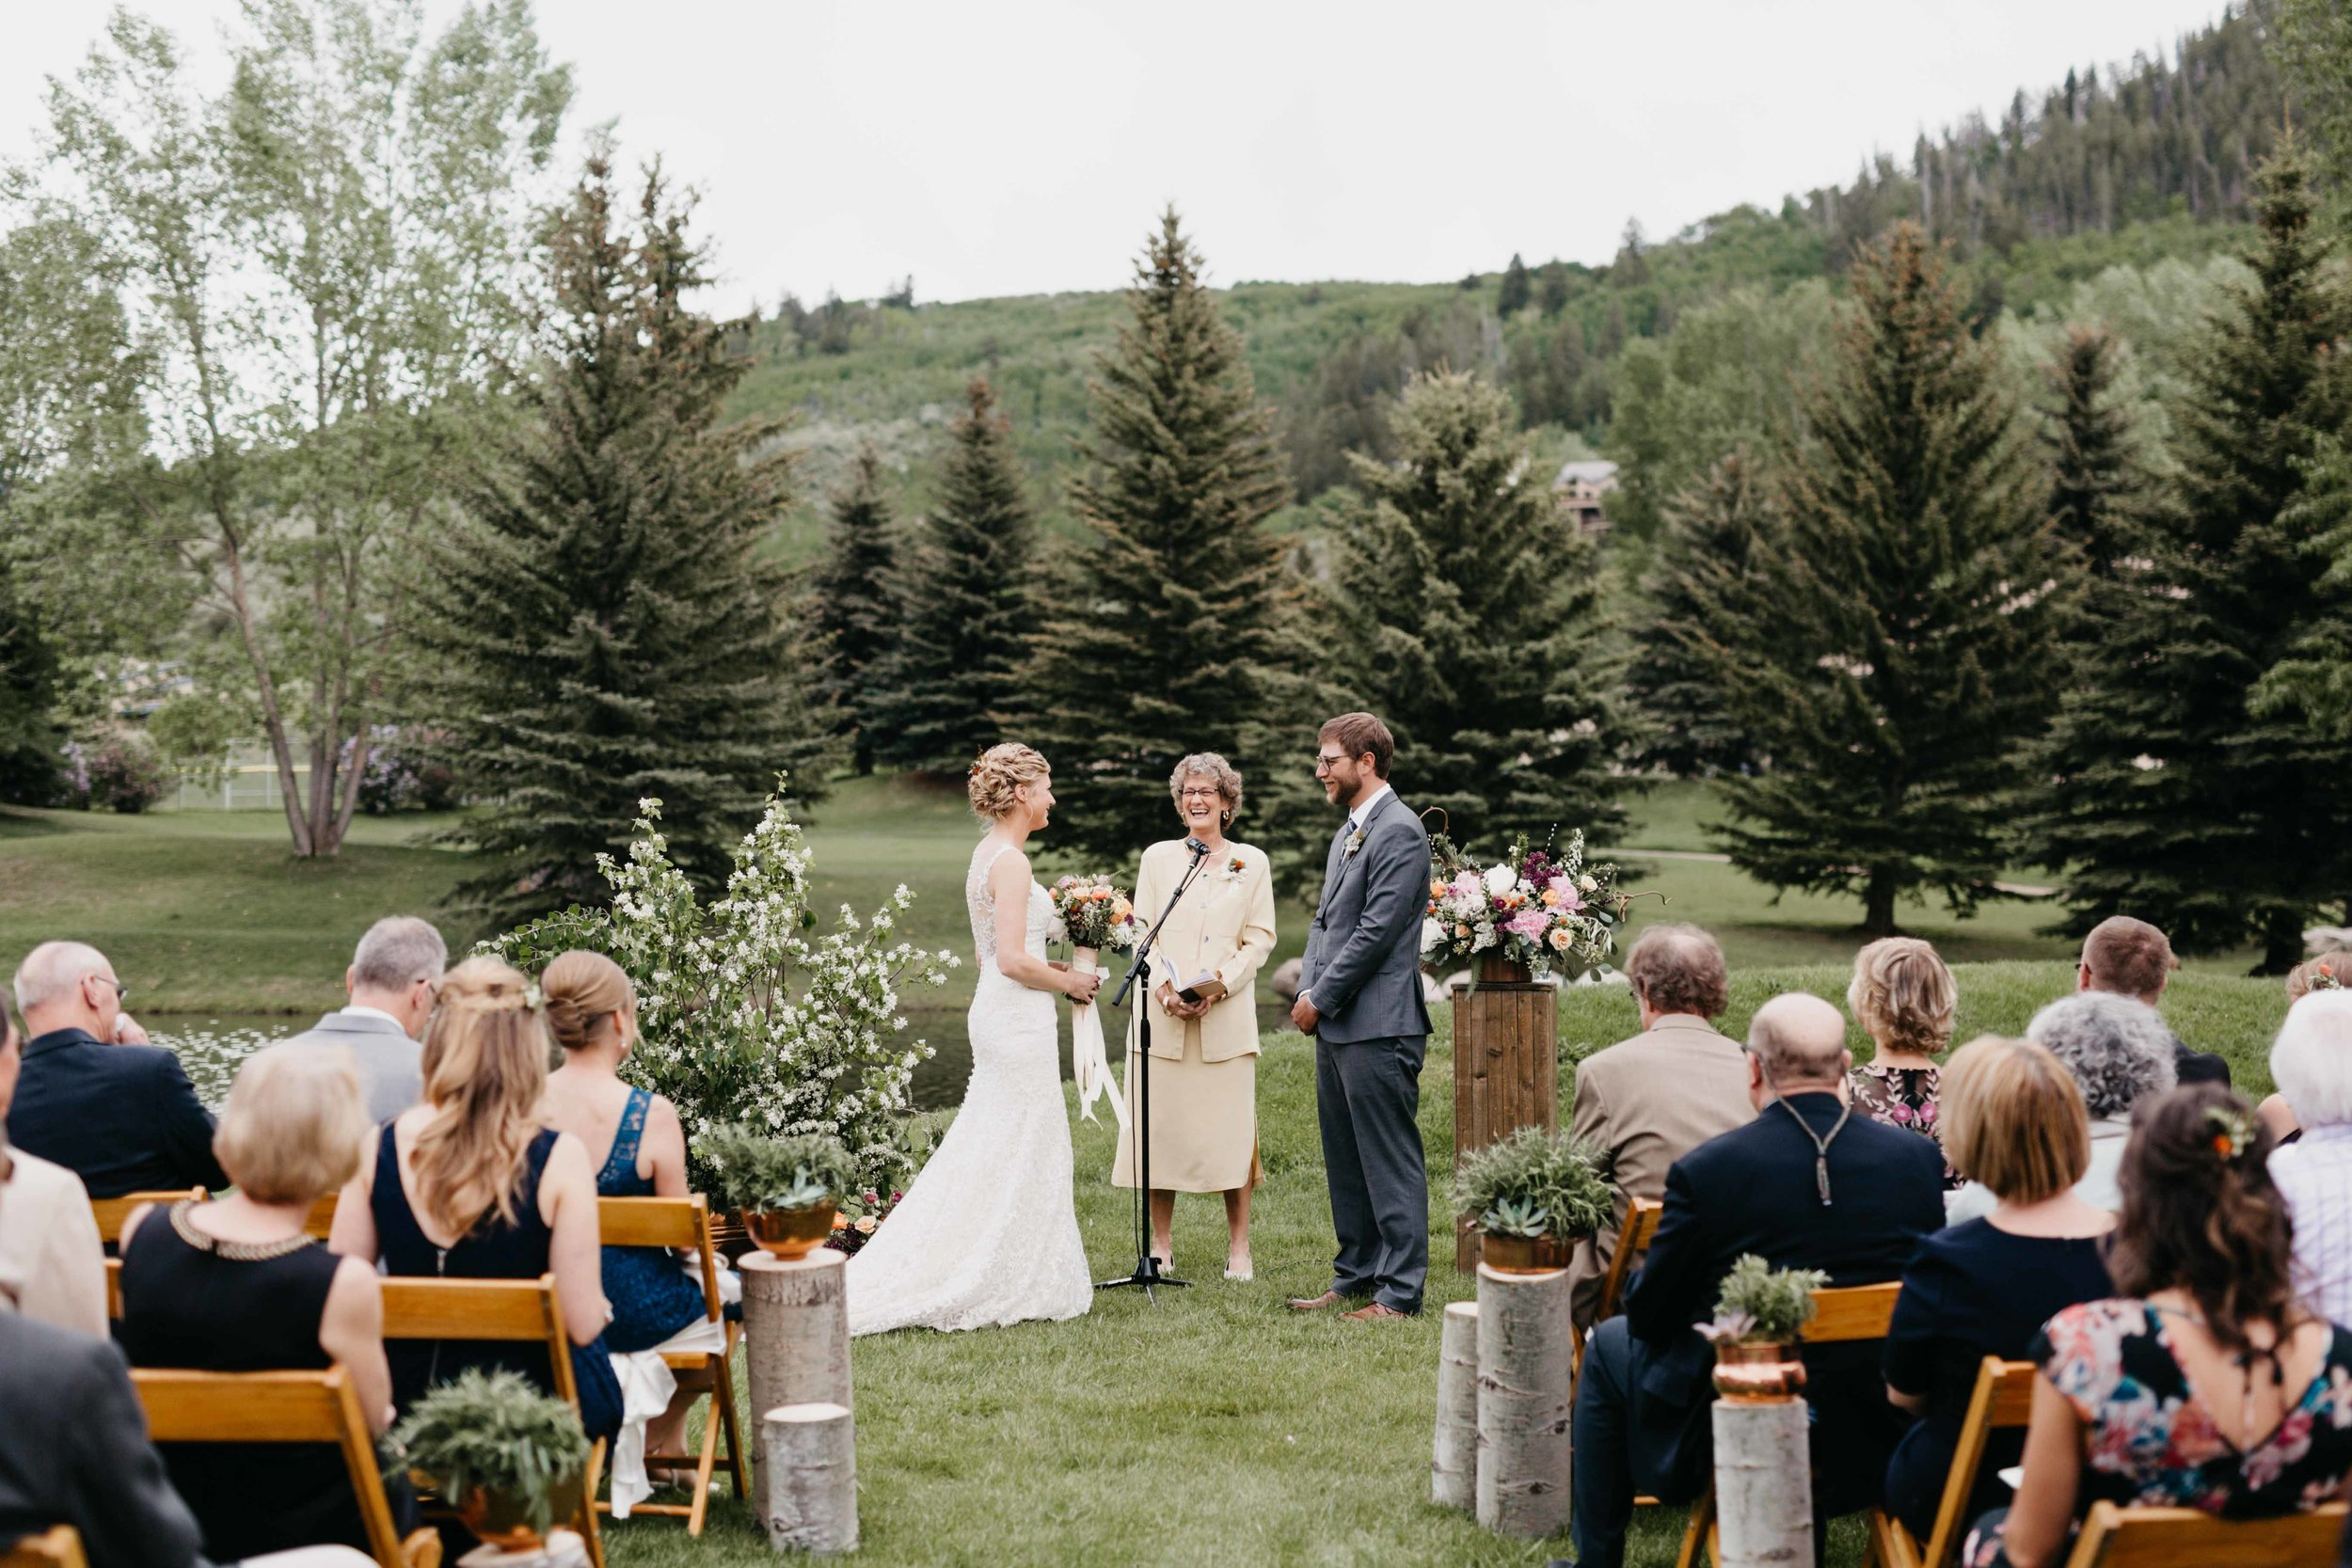 Colorado-Wedding-Photographer-55.jpg